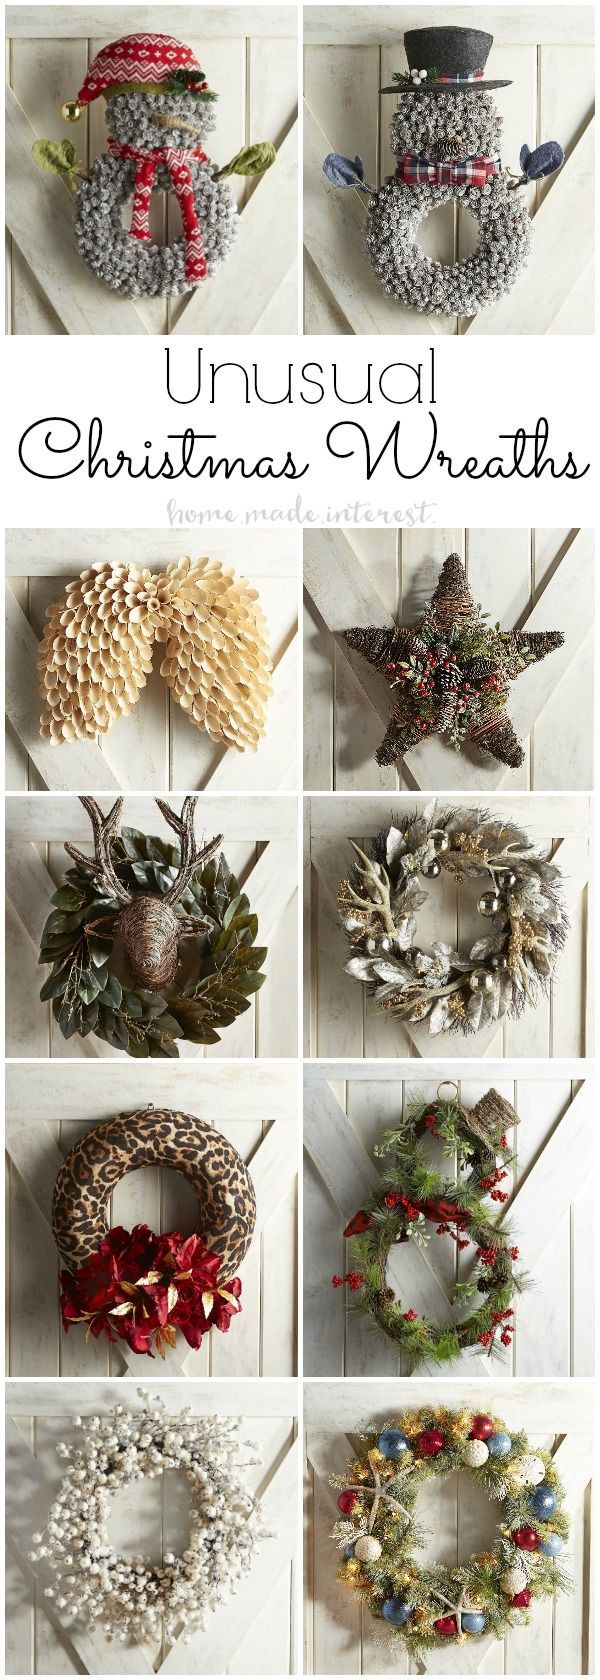 Hummel christmas tree ornaments -  Affiliate All Different Shapes And Colored Wreaths For Your Front Door This Christmas Season Ciao Holiday Ideas Decor Pinterest